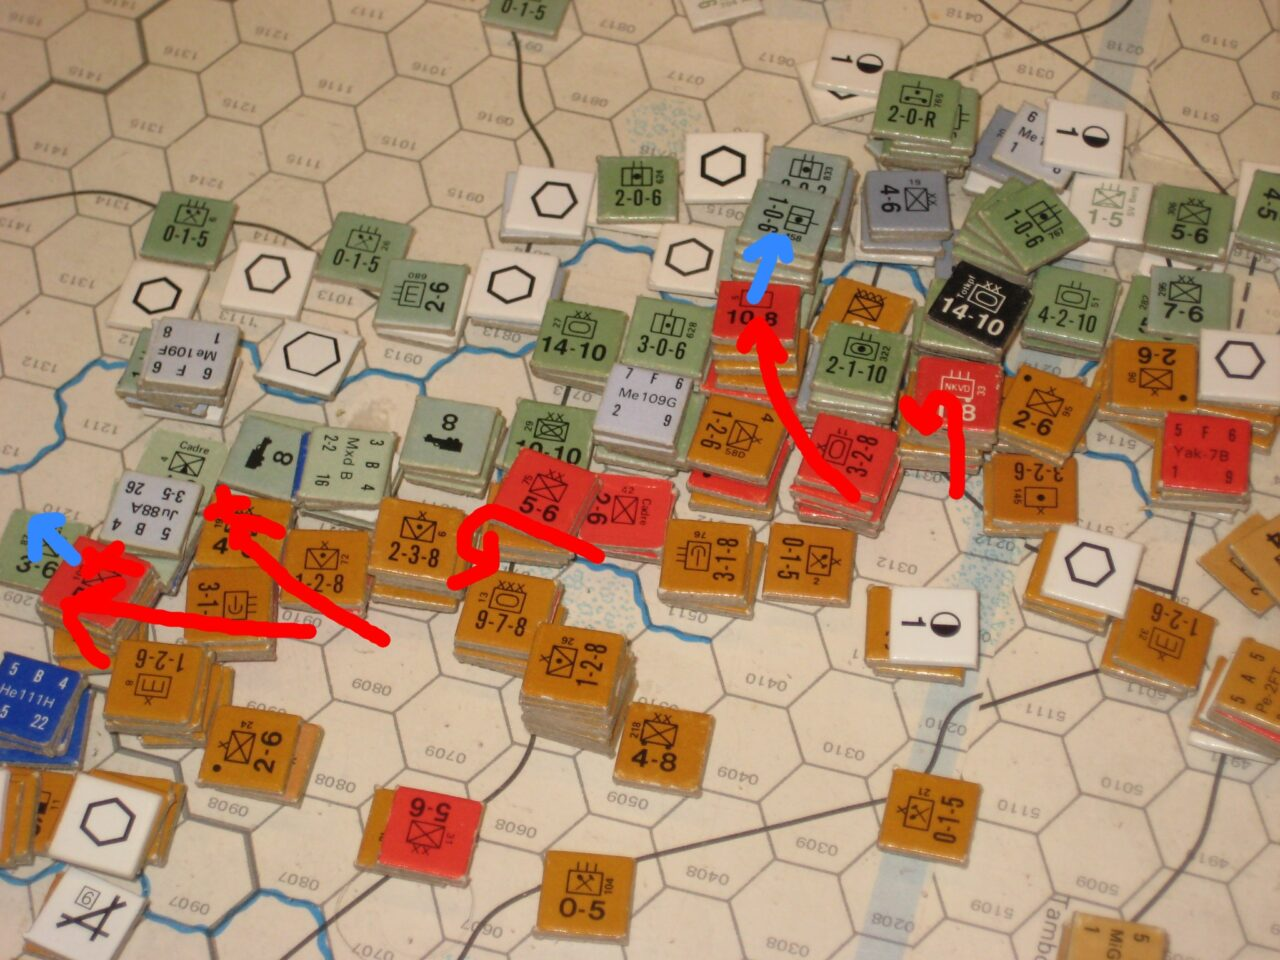 The Soviets fail to relieve Voroneszh